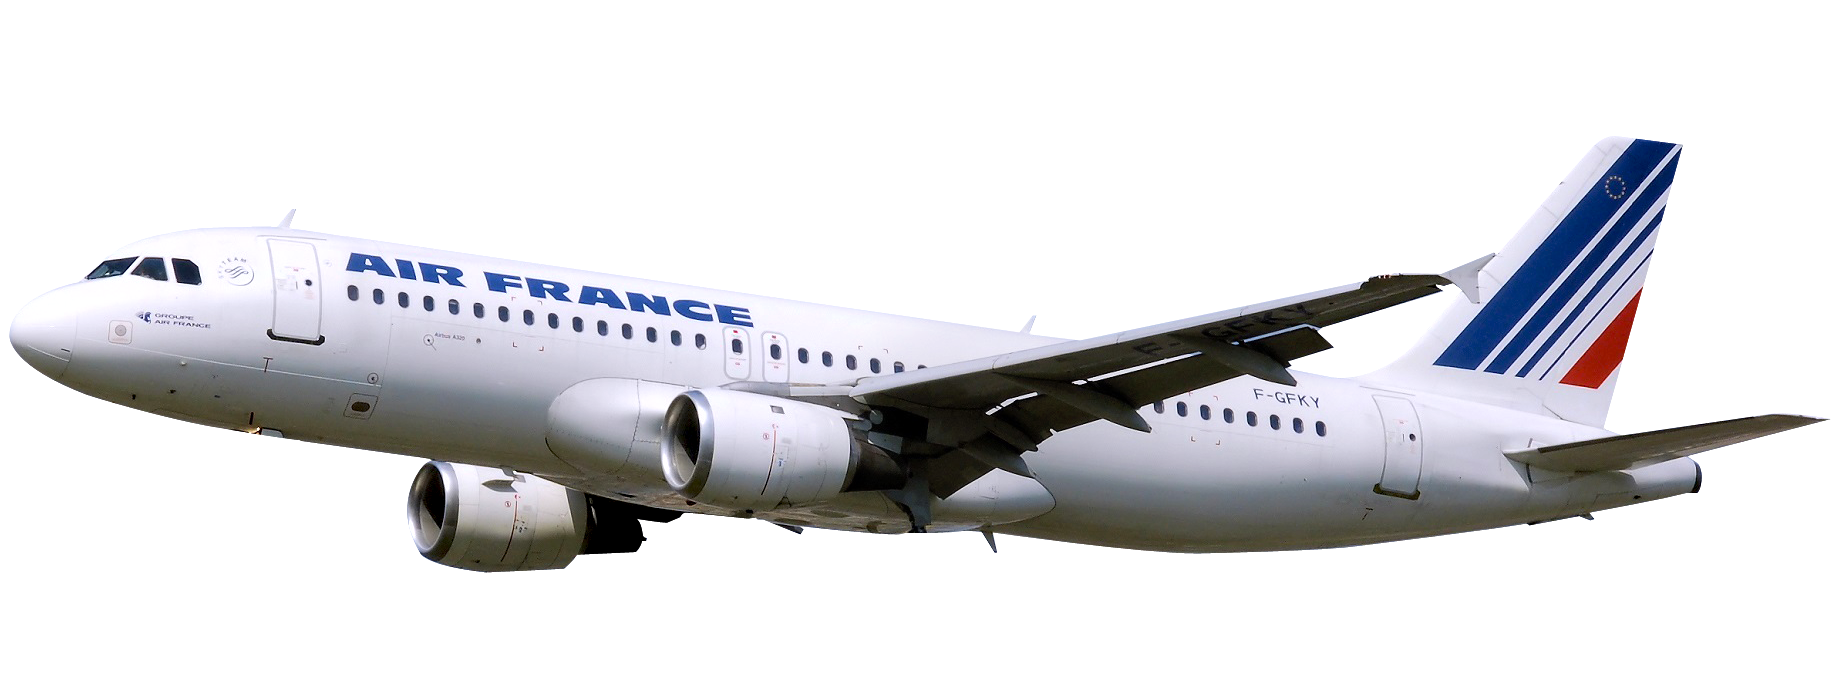 Air France plane PNG Clipart - Plane HD PNG